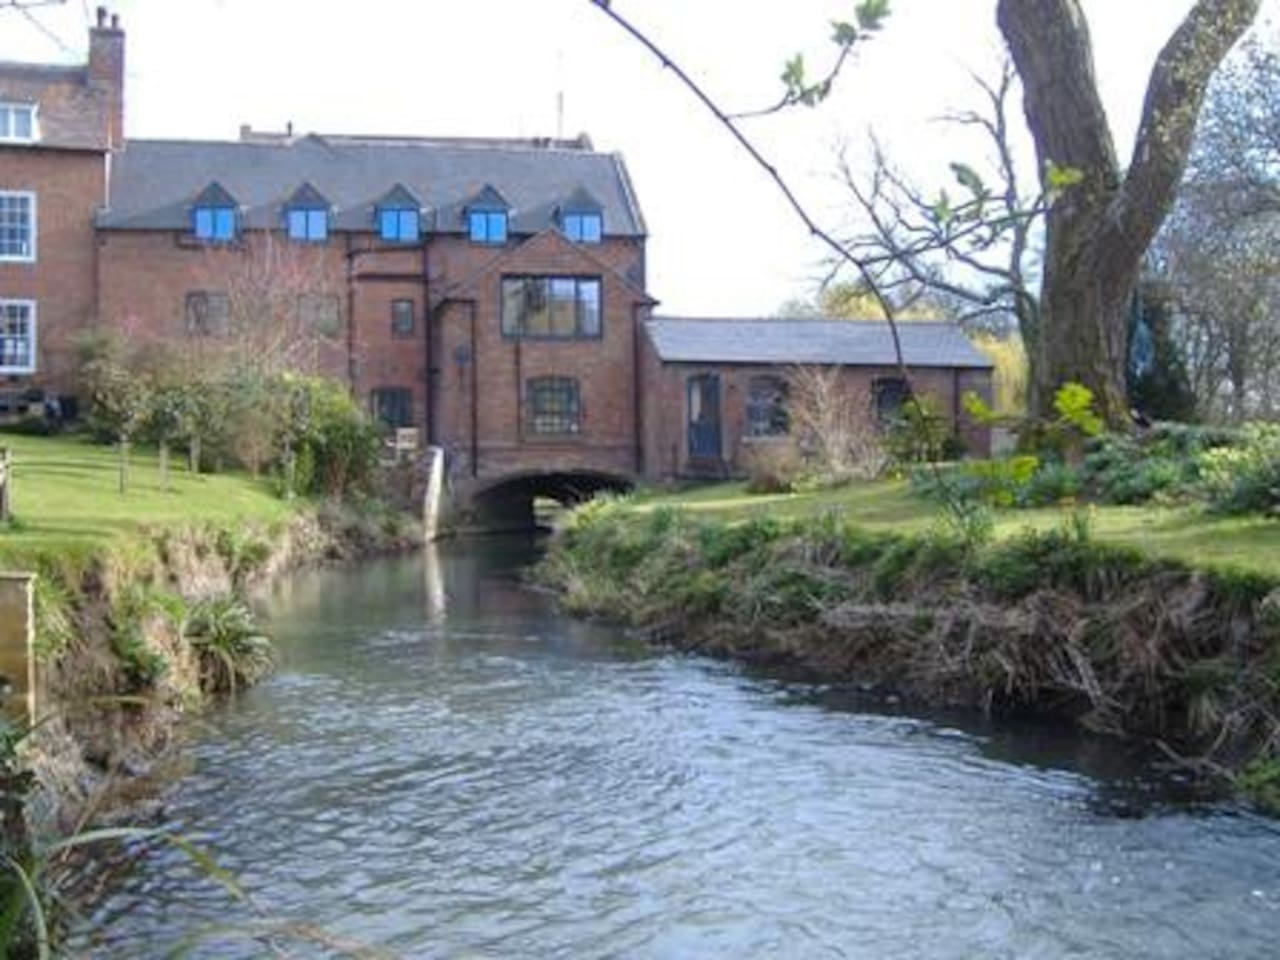 The Mill from the river